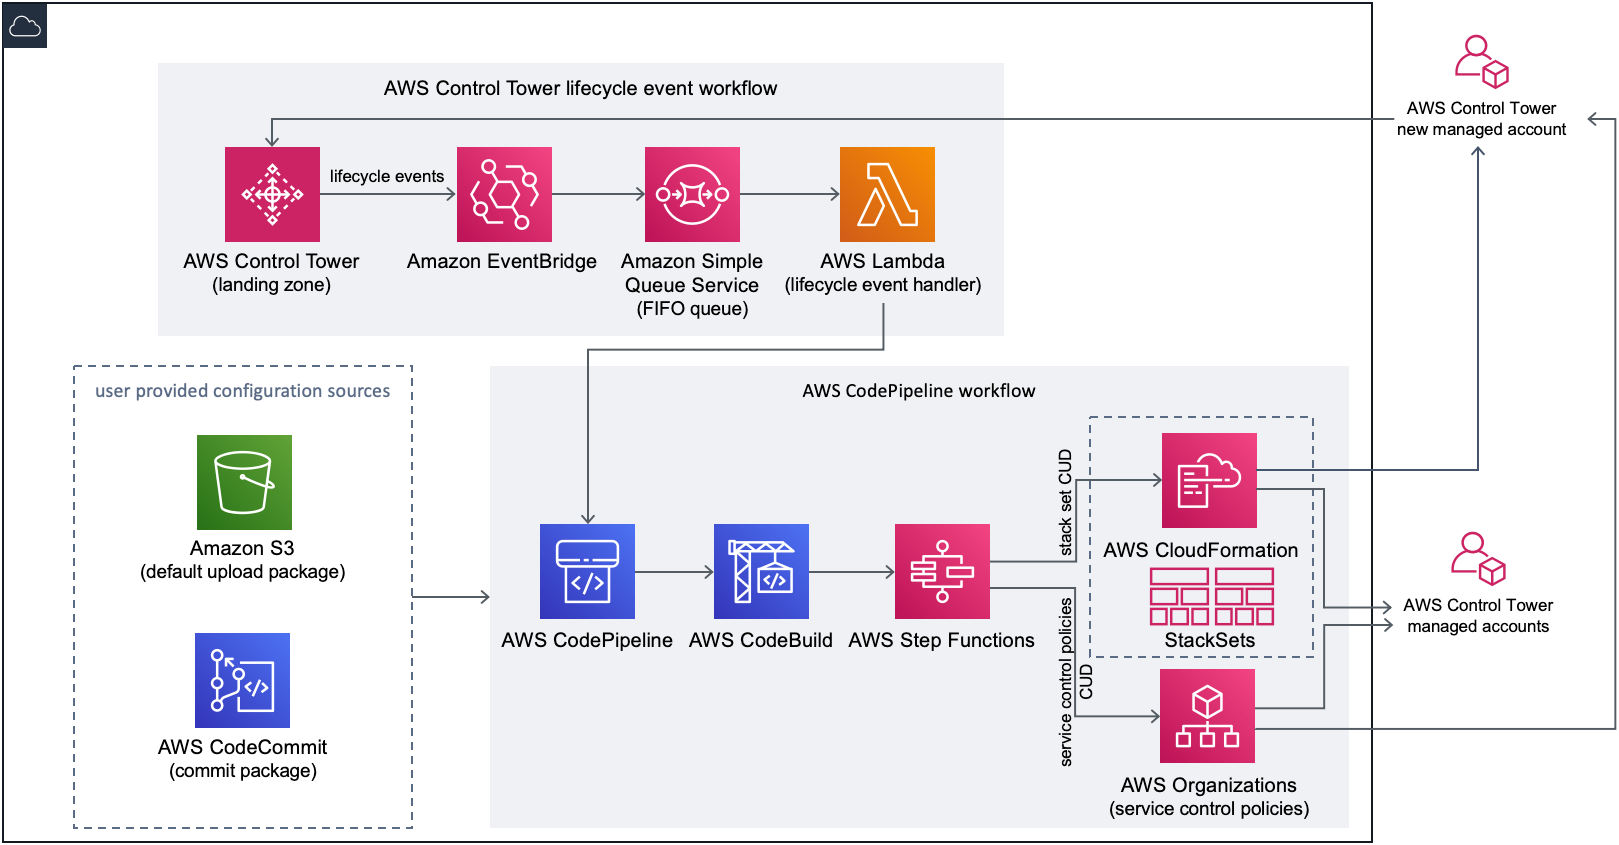 Customizations for AWS Control Tower | Architecture Diagram